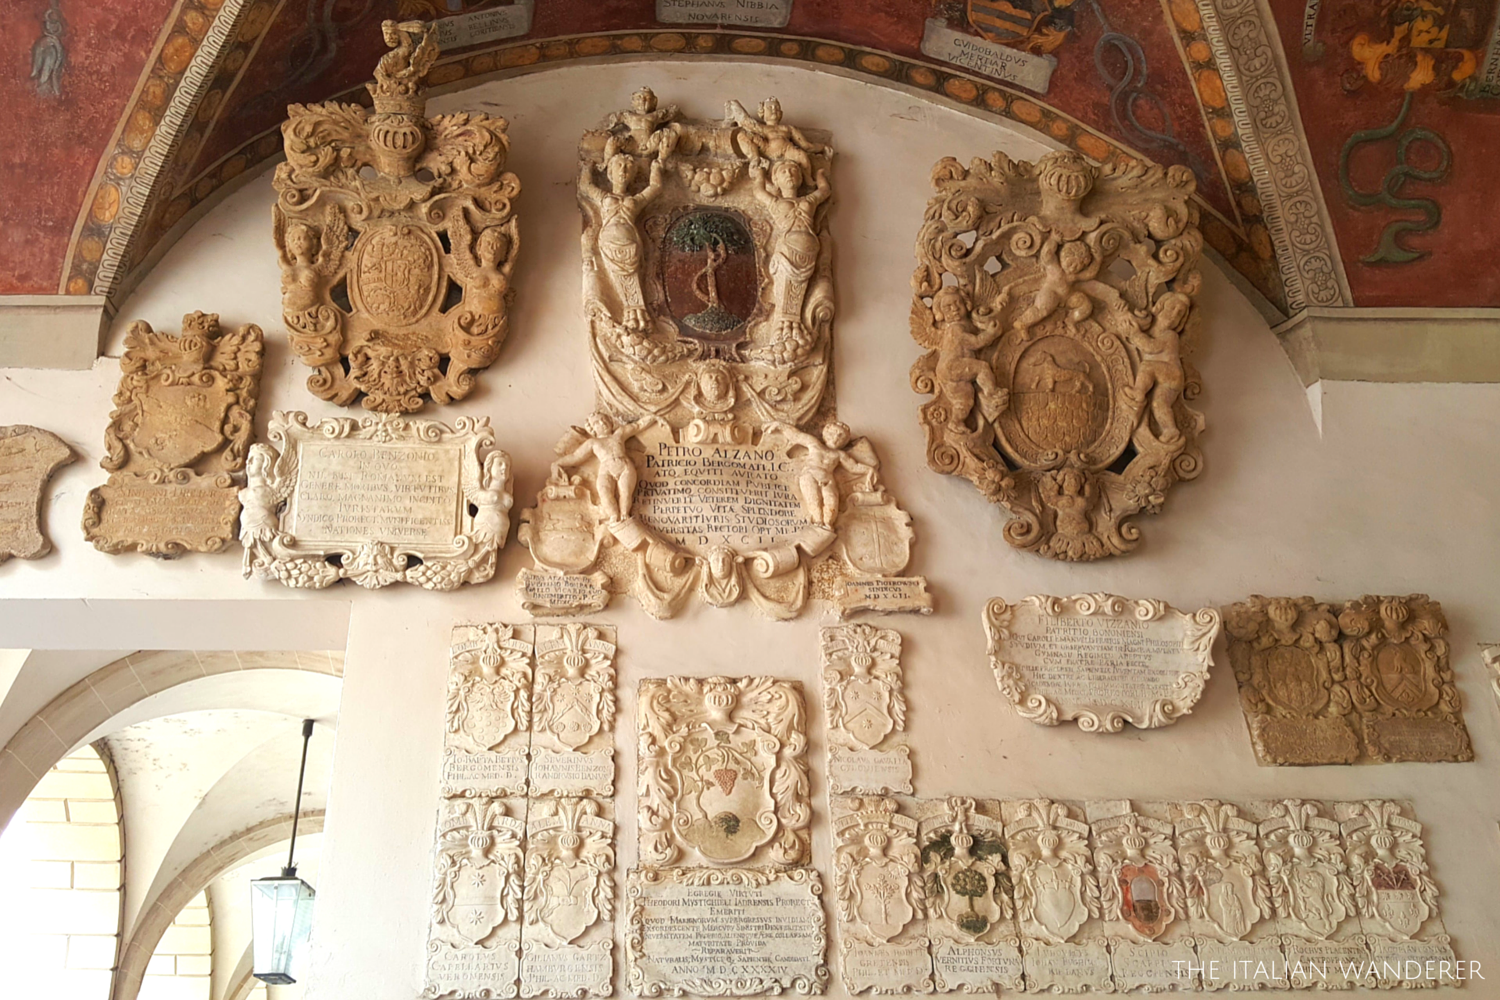 Padua, Palazzo Bo, symbols of the families of the students that attended the university in past times.